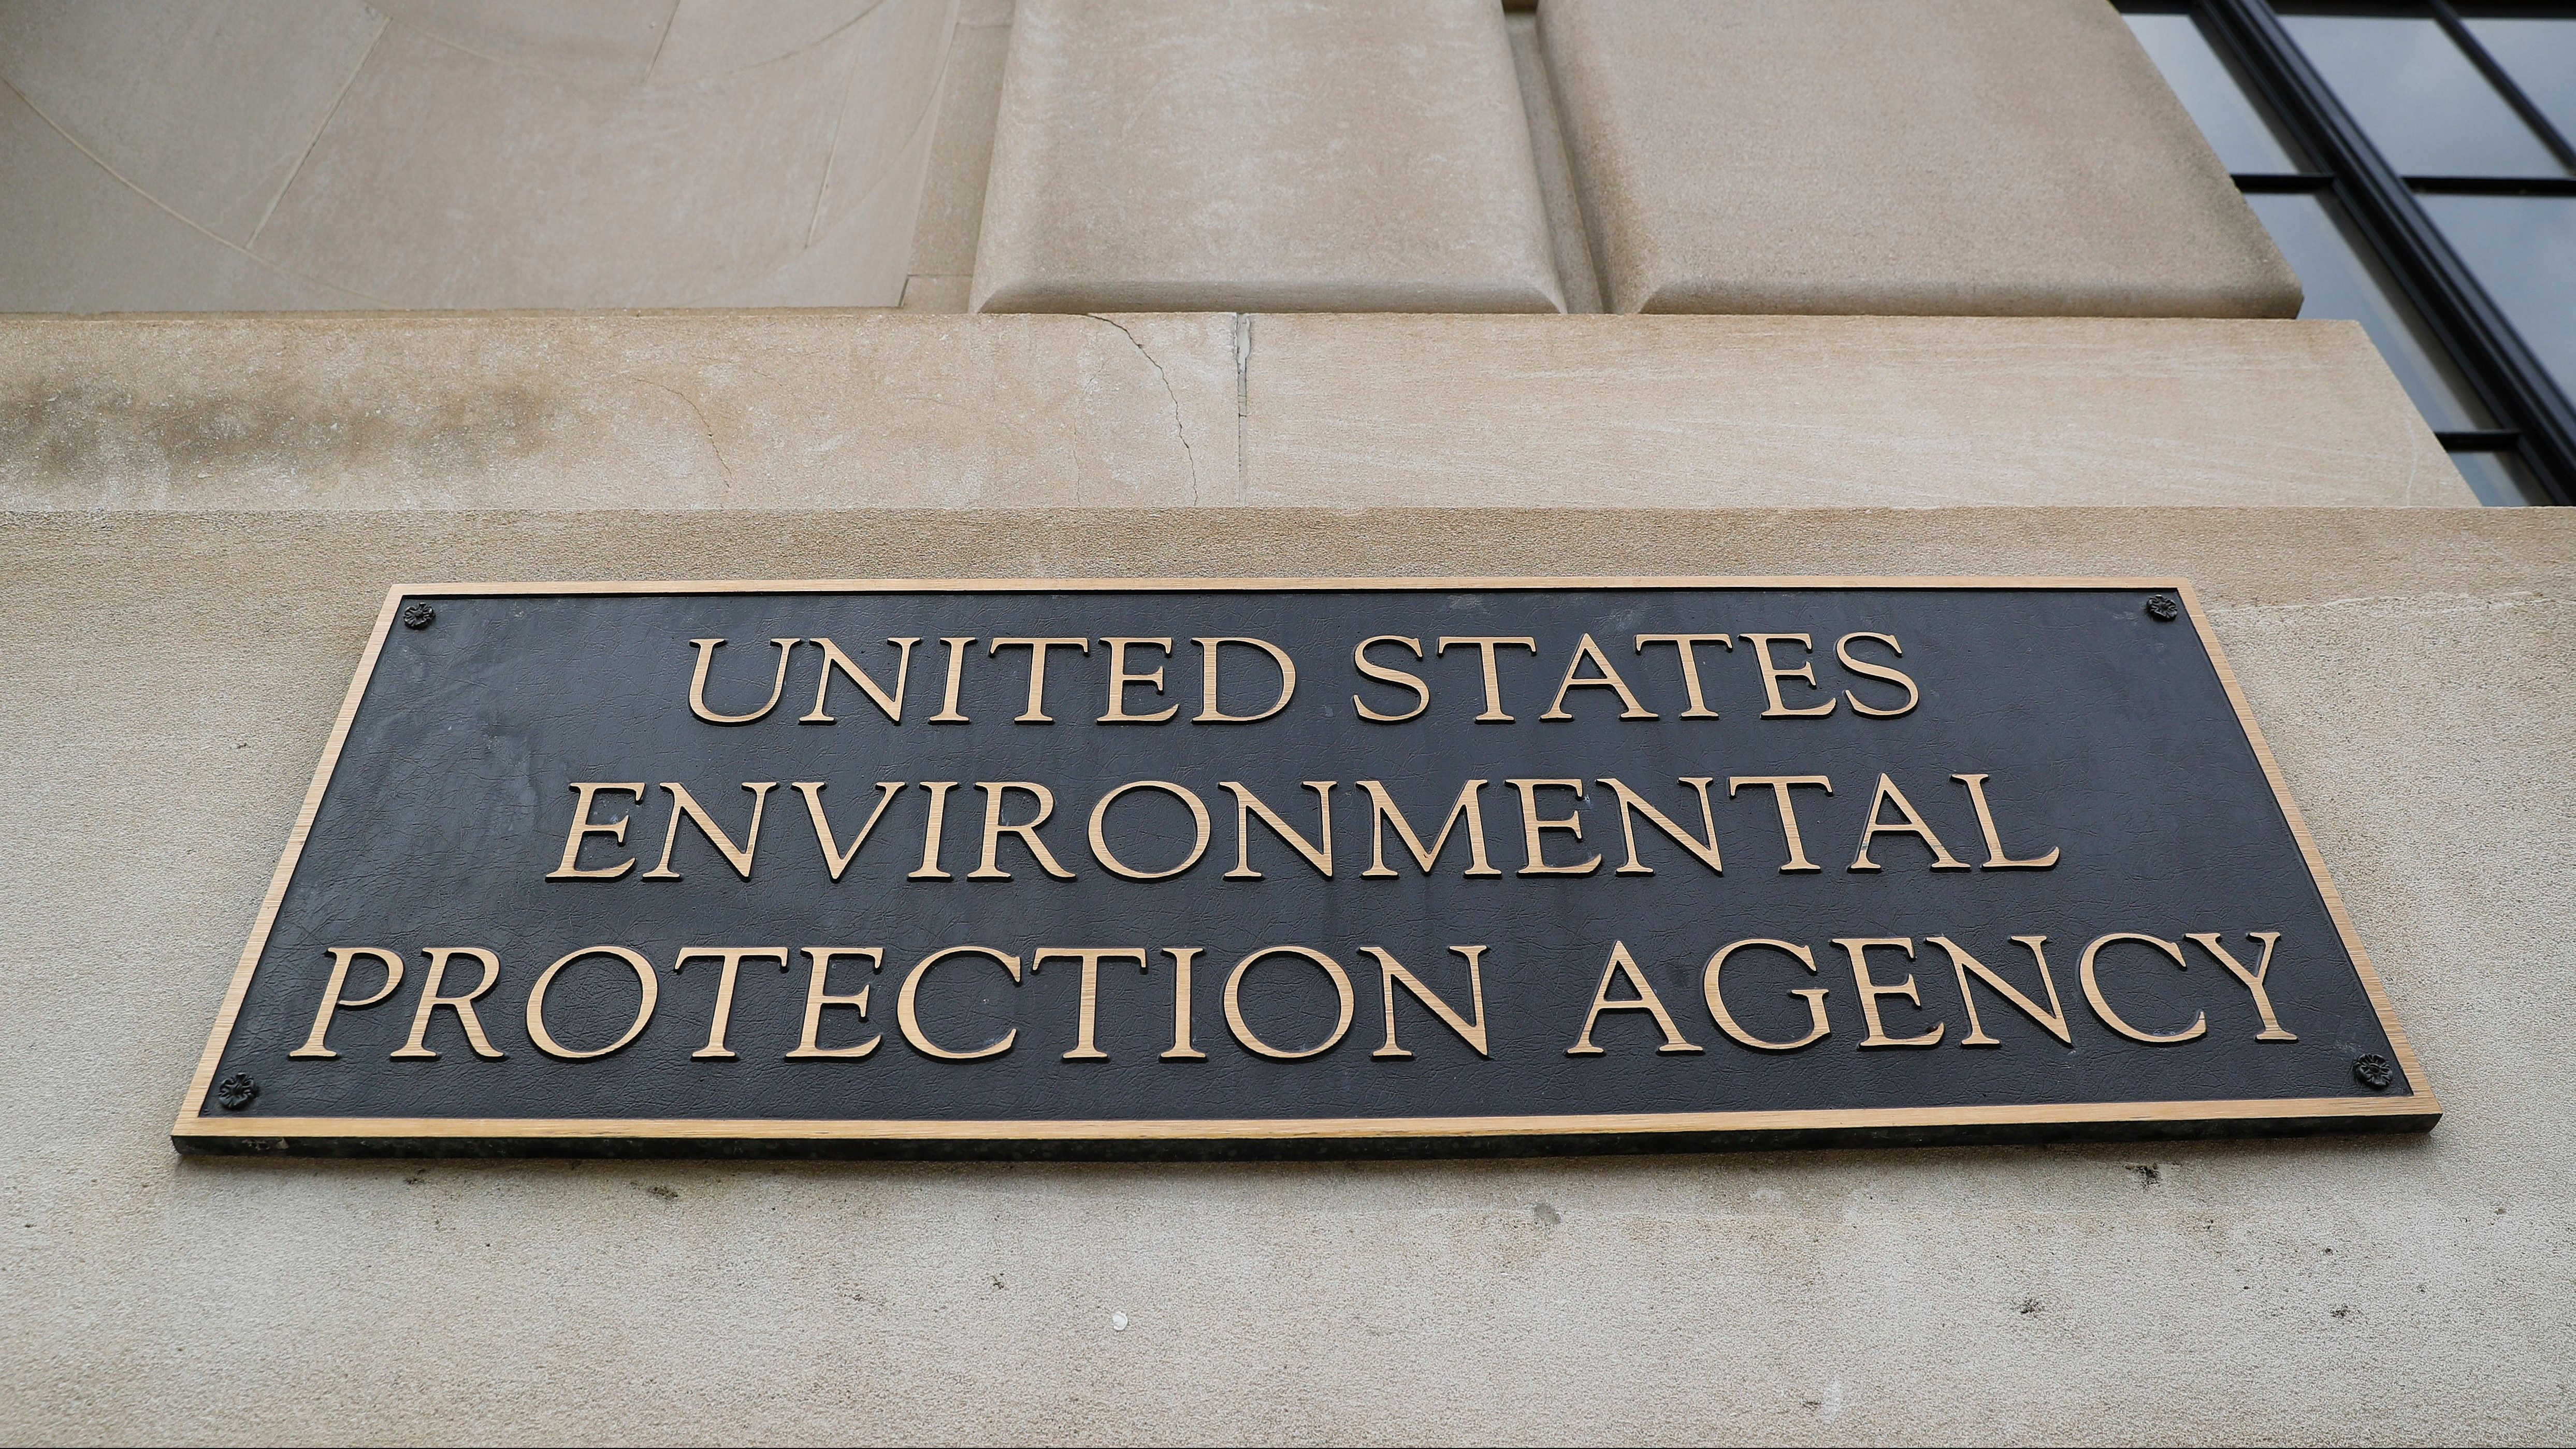 FILE - In this Sept. 21, 2017, file photo, the Environmental Protection Agency (EPA) Building is shown in Washington. Andrew Wheeler, the No. 2 official at EPA, will take over the agency on July 9, 2018, now that President Donald Trump has accepted the resignation of embattled administrator Scott Pruitt. He is a former coal industry lobbyist who helped lead an industry fight against regulations that protect Americans' health and address climate change.